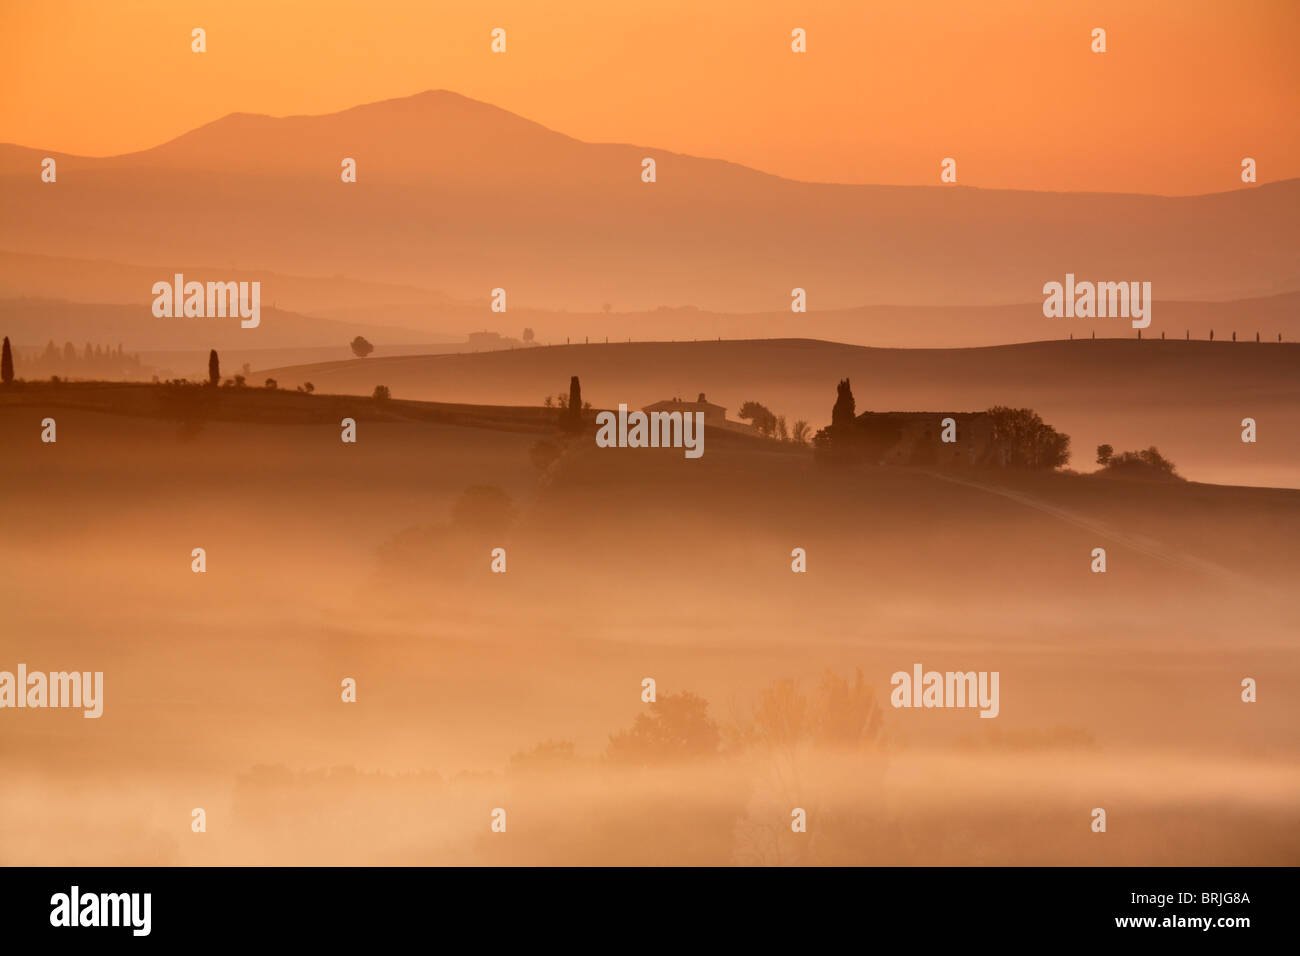 Pre-dawn light paints the misty landscape of the Val D'Orcia in brilliant orange & red hues beneath the - Stock Image